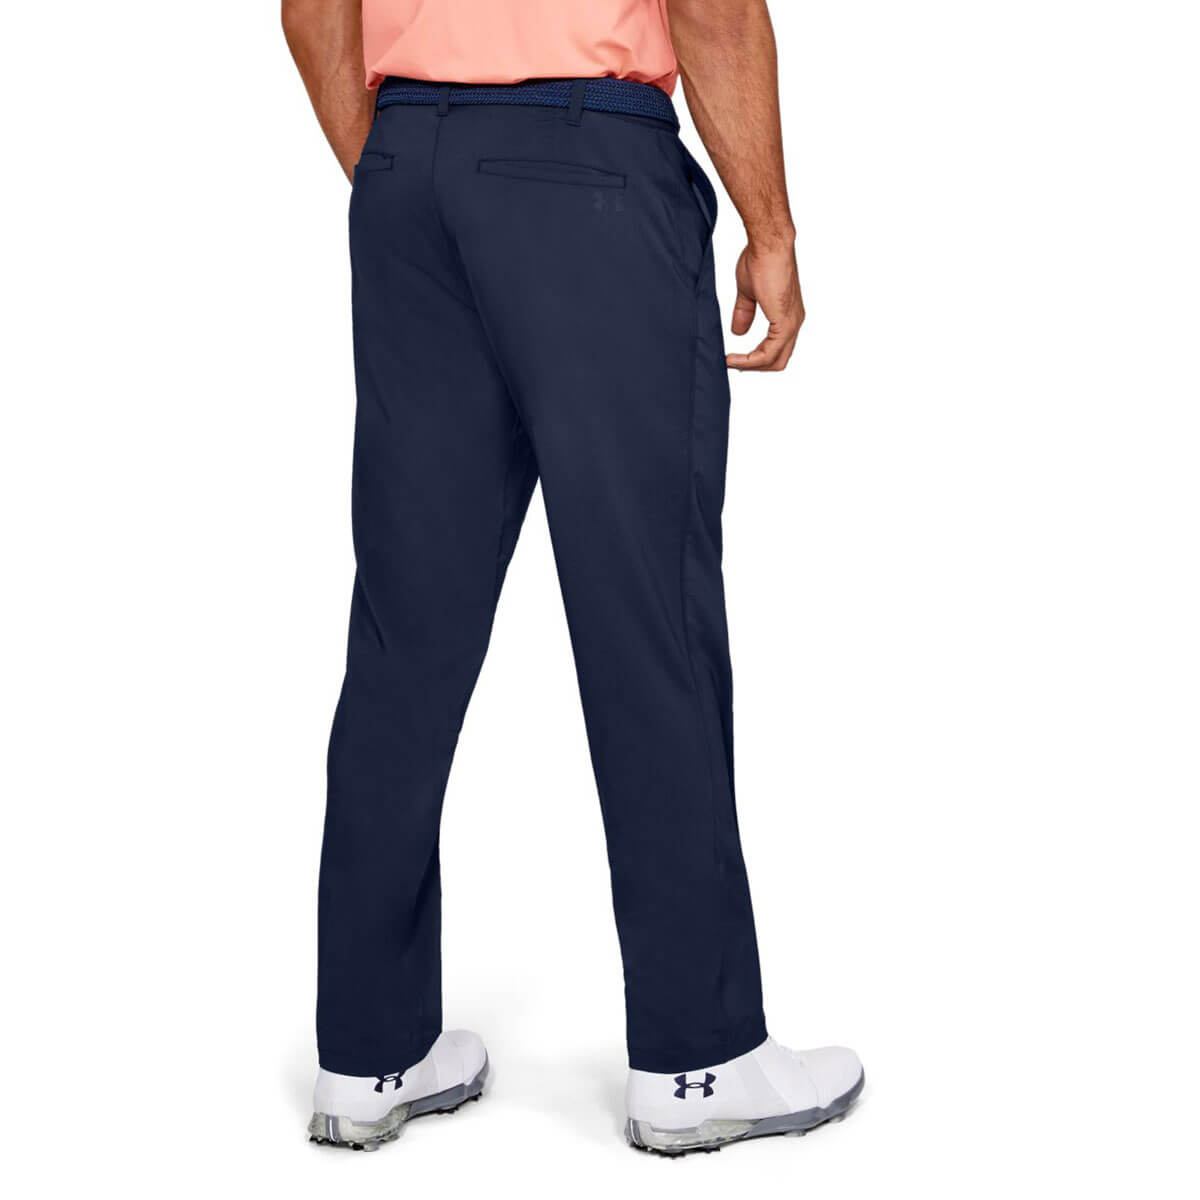 Under-Armour-Mens-2019-EU-Tech-Stretch-Straight-Golf-Trousers-30-OFF-RRP thumbnail 3